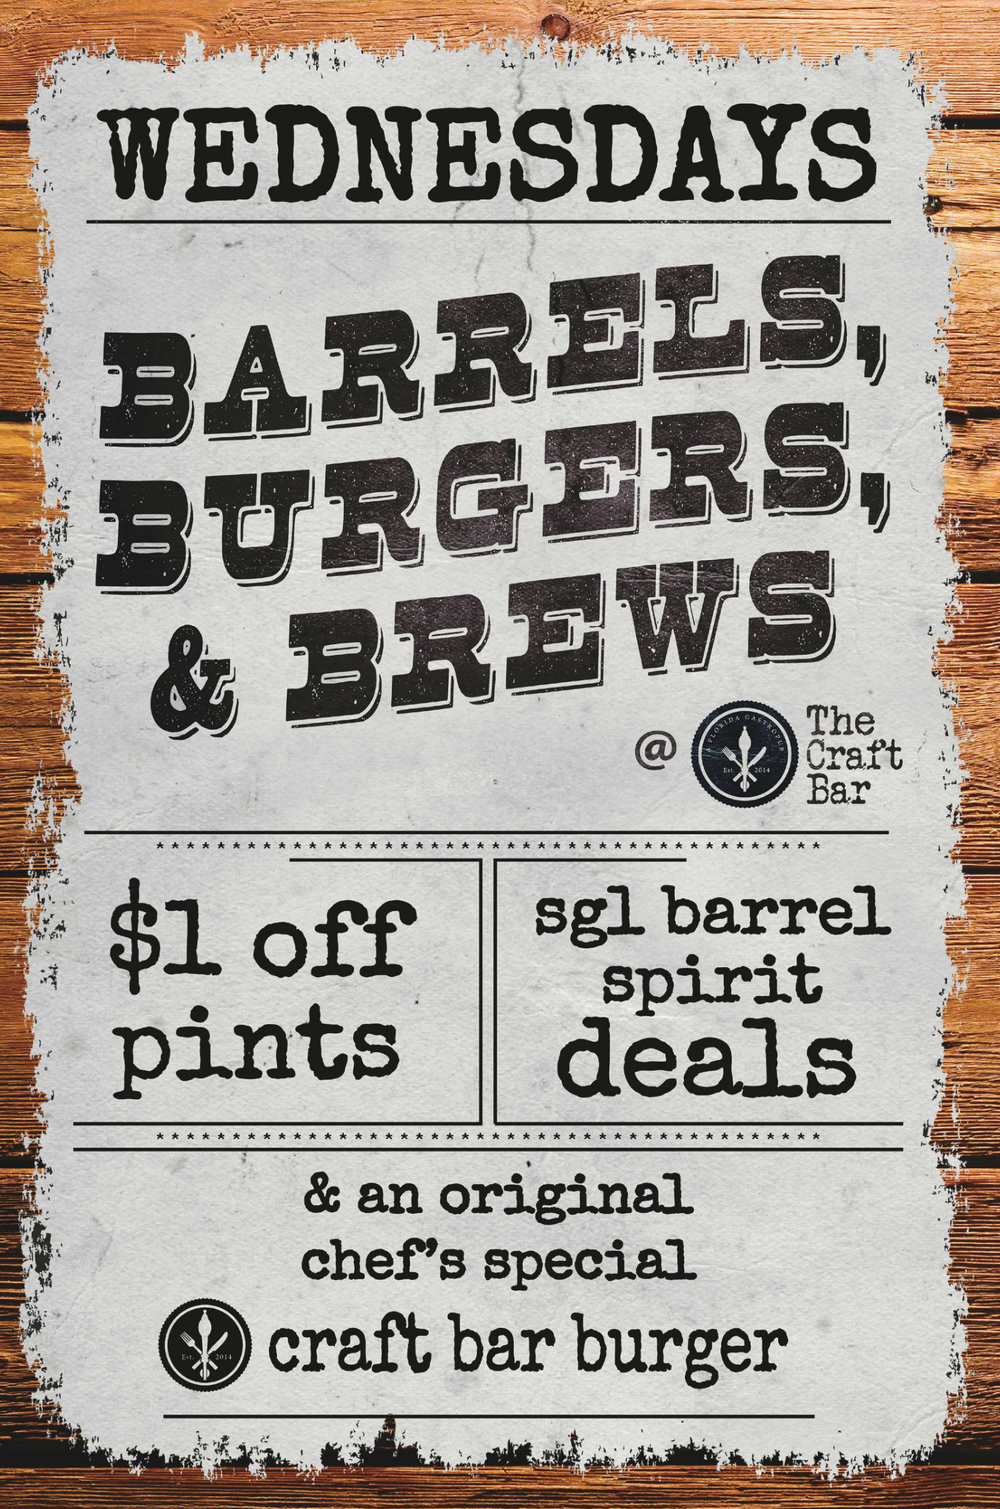 barrels burgers and brews 2 up flyer_12_15_15-front.jpg